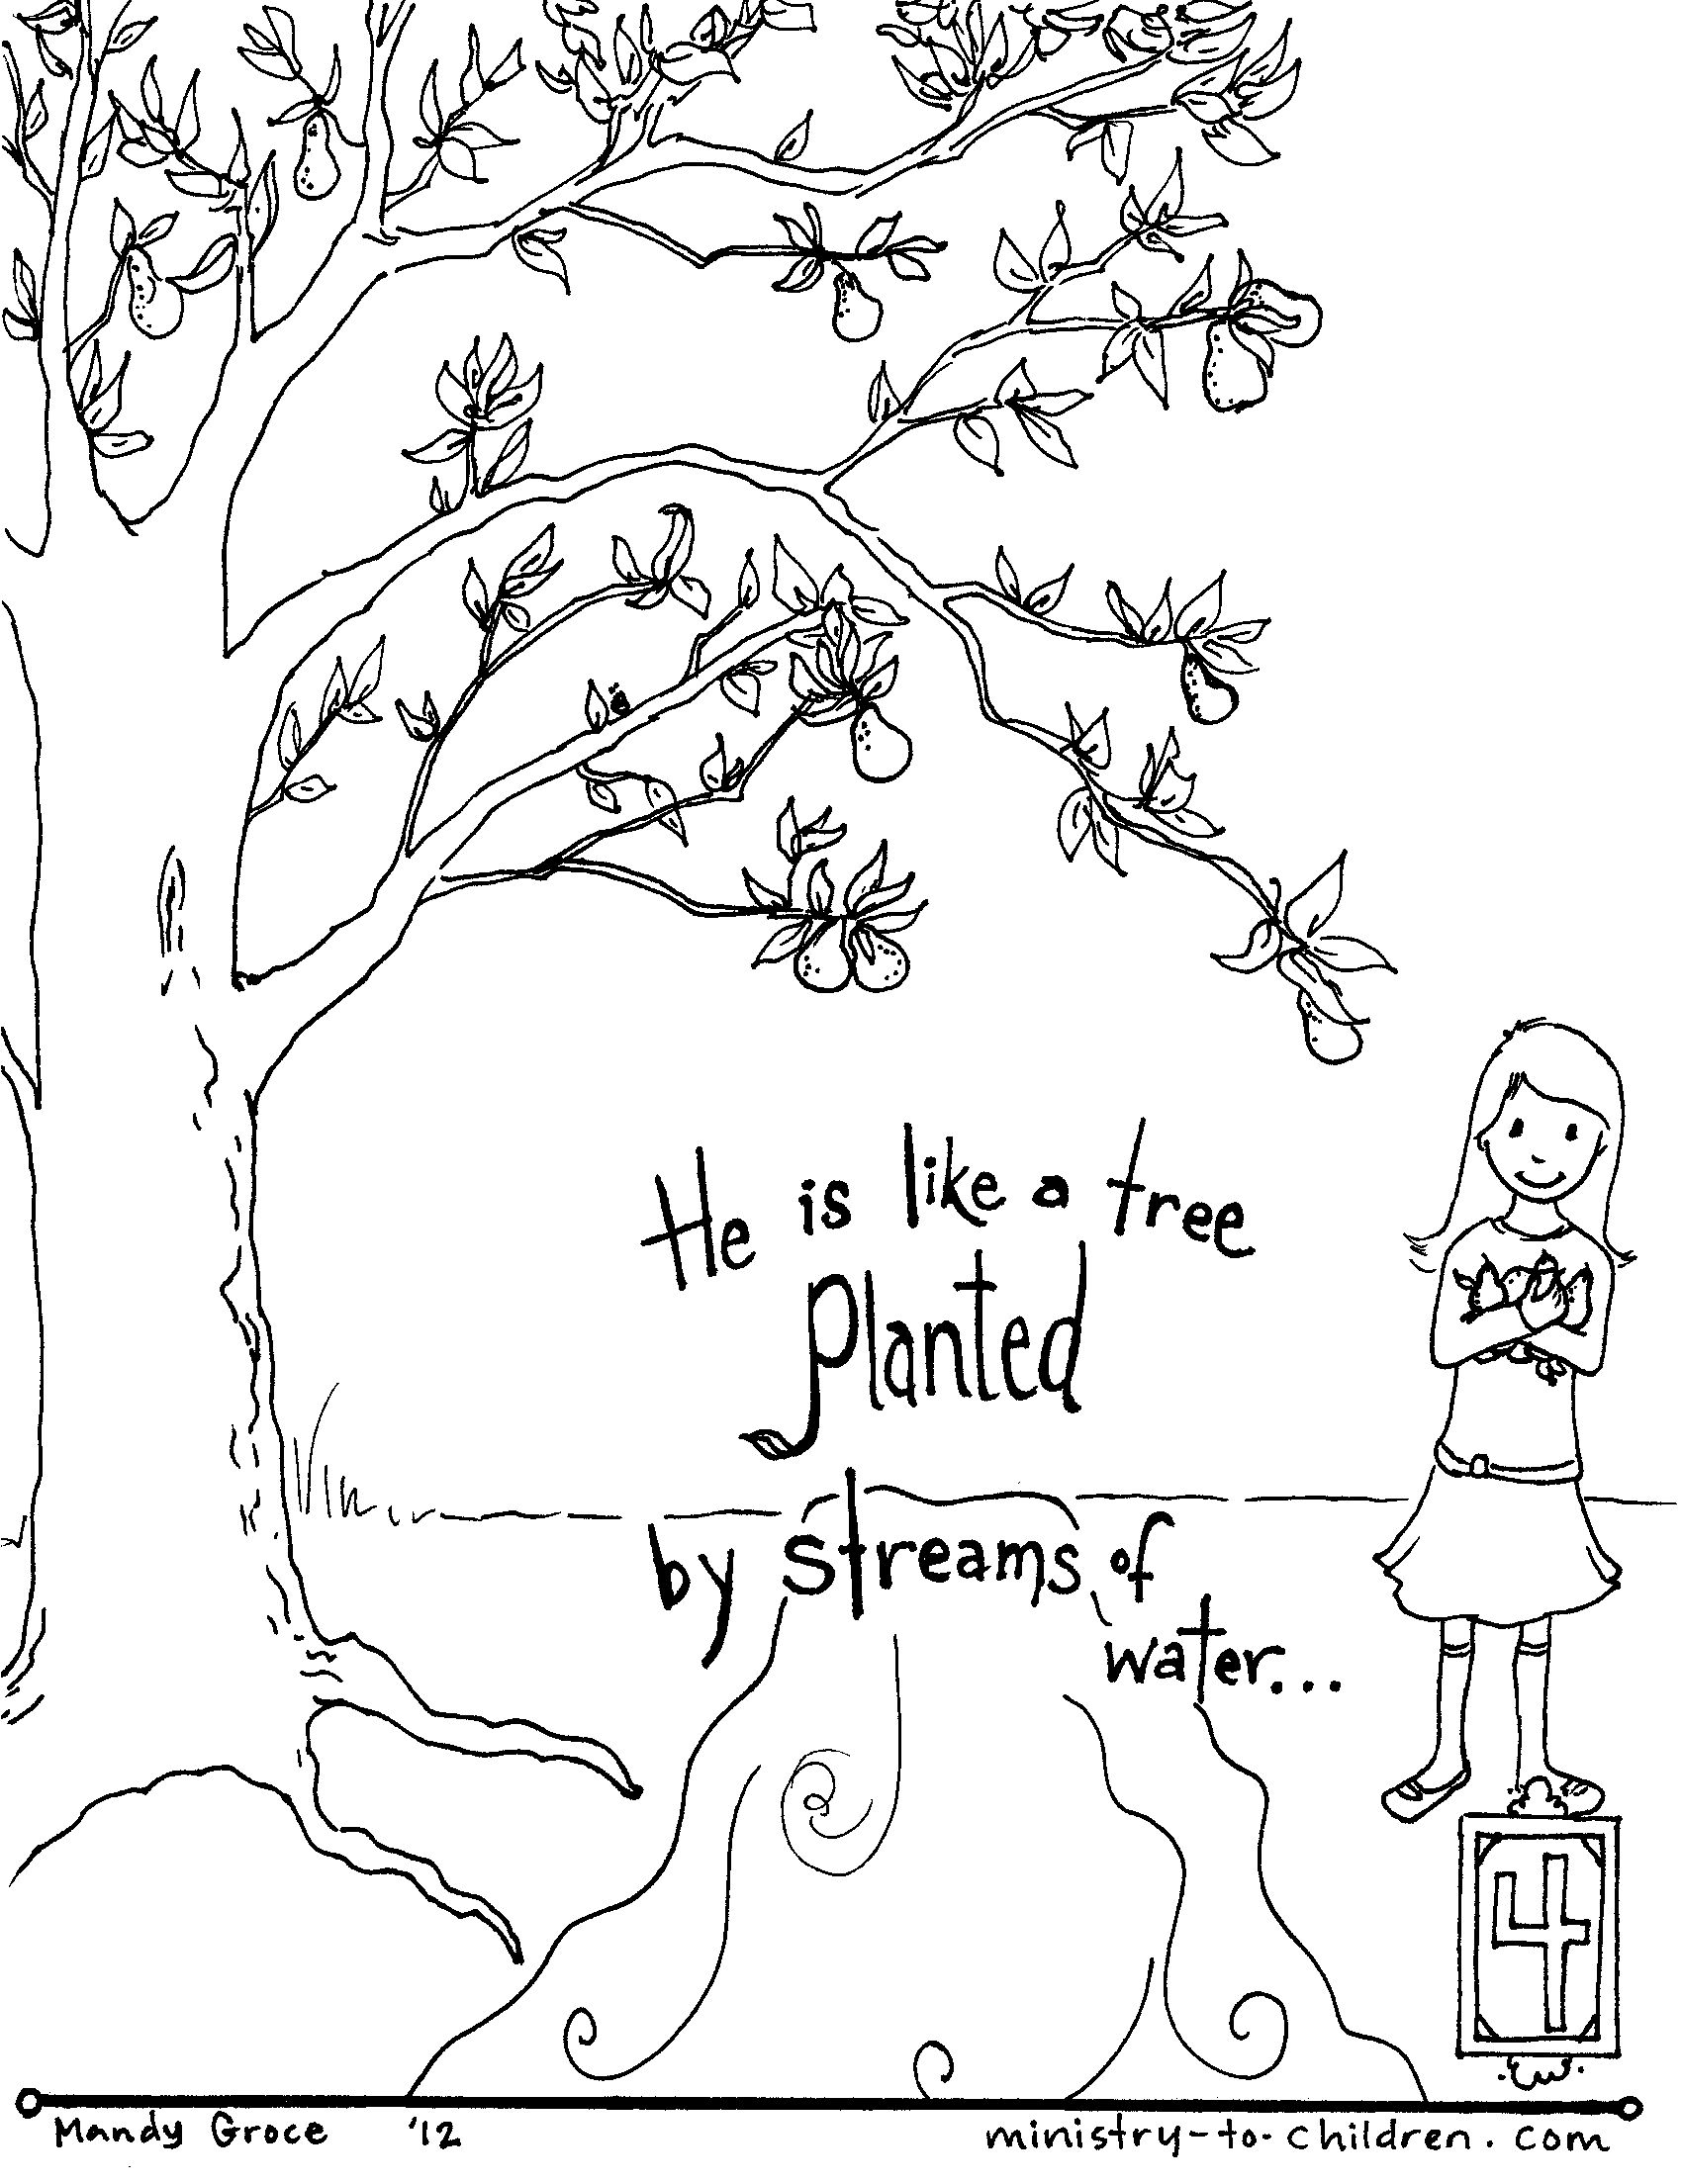 Free coloring pages bible - Bible Coloring Pages By Verse Psalm 1 Free Coloring Pages Bible Verses